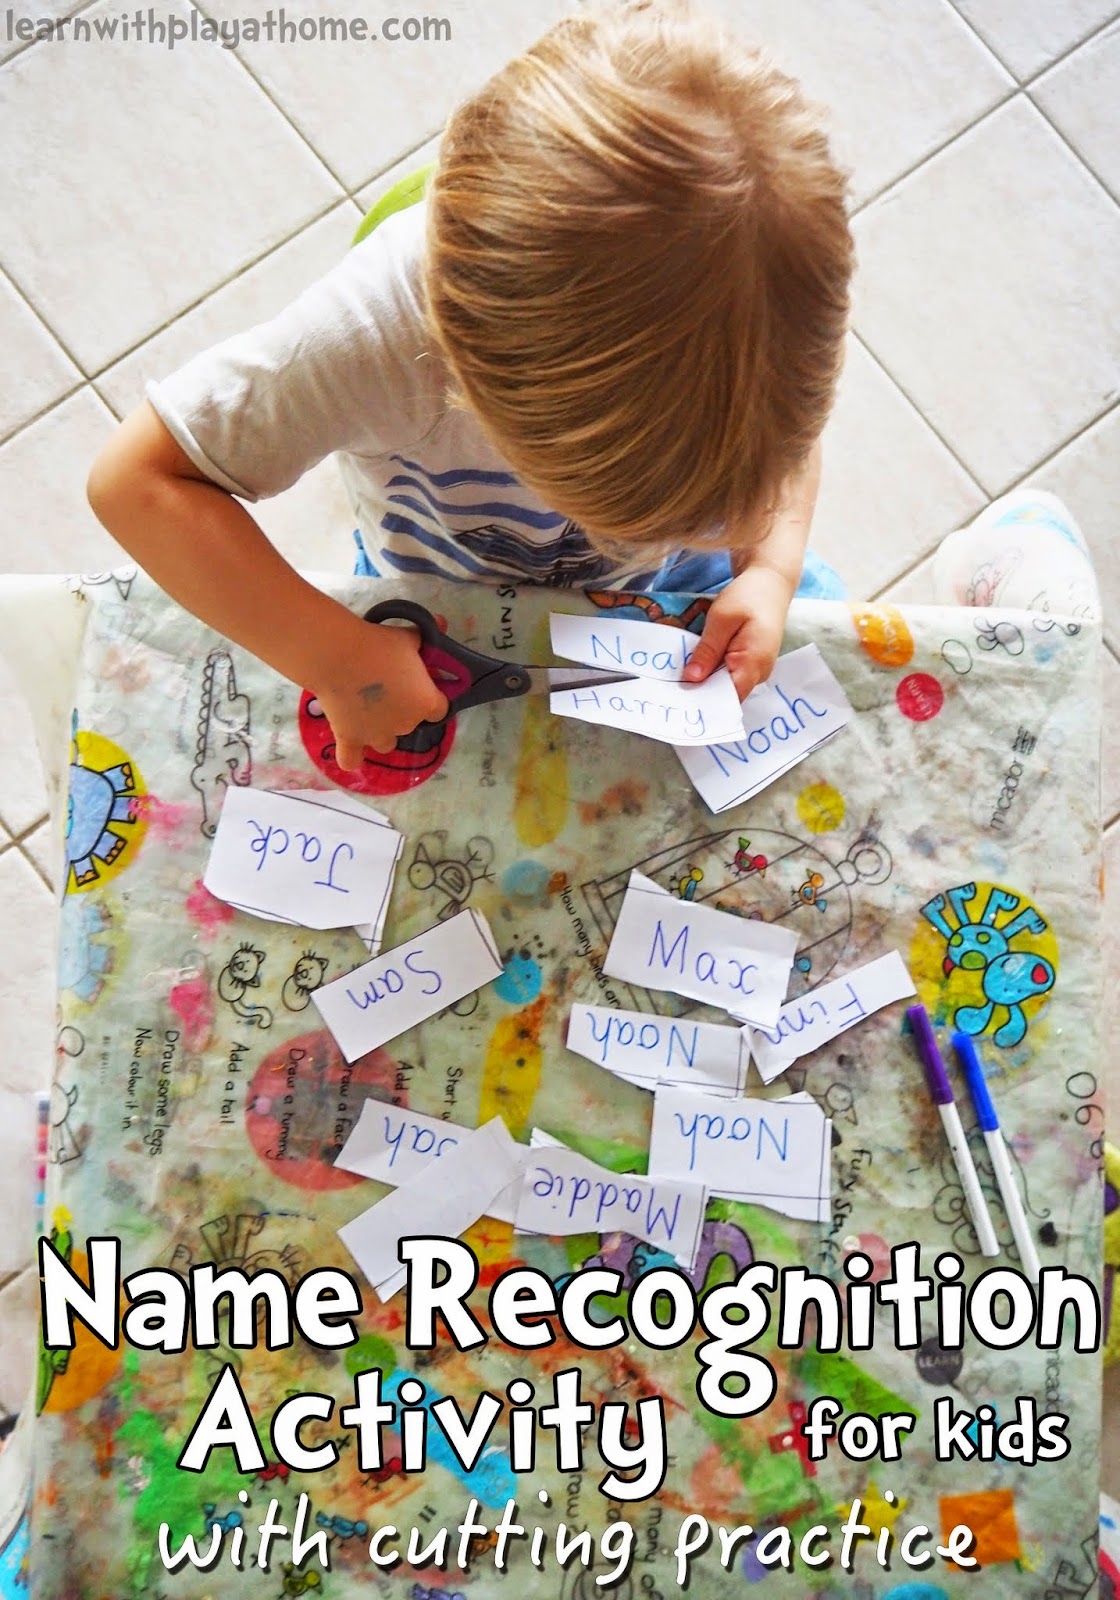 Learn With Play At Home Name Recognition Activity With